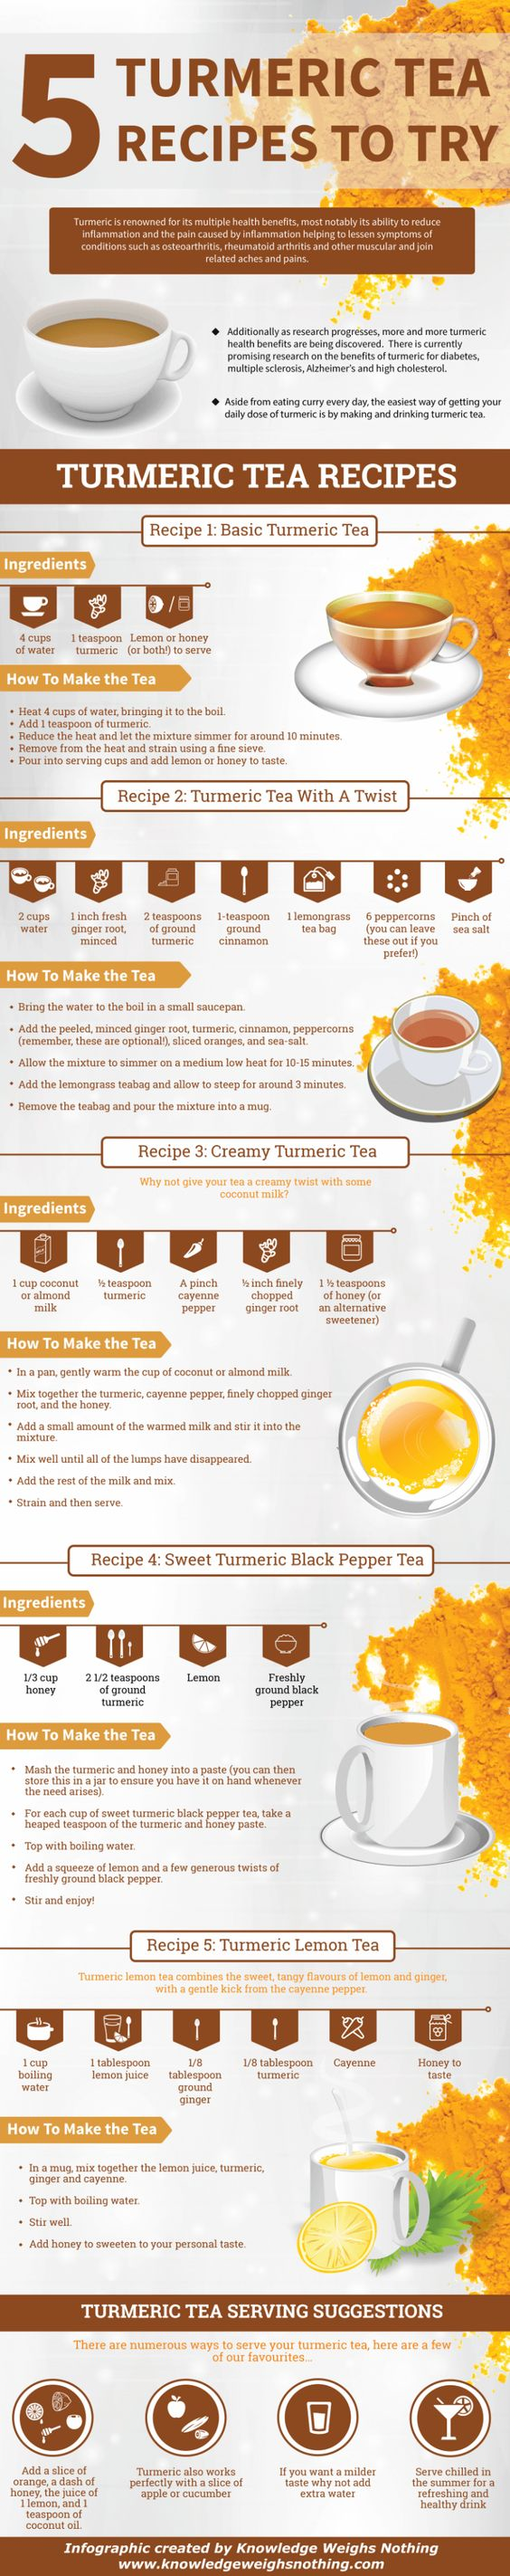 Infographic on turmeric tea. Five recipes to try, including the basic - 4 cups…